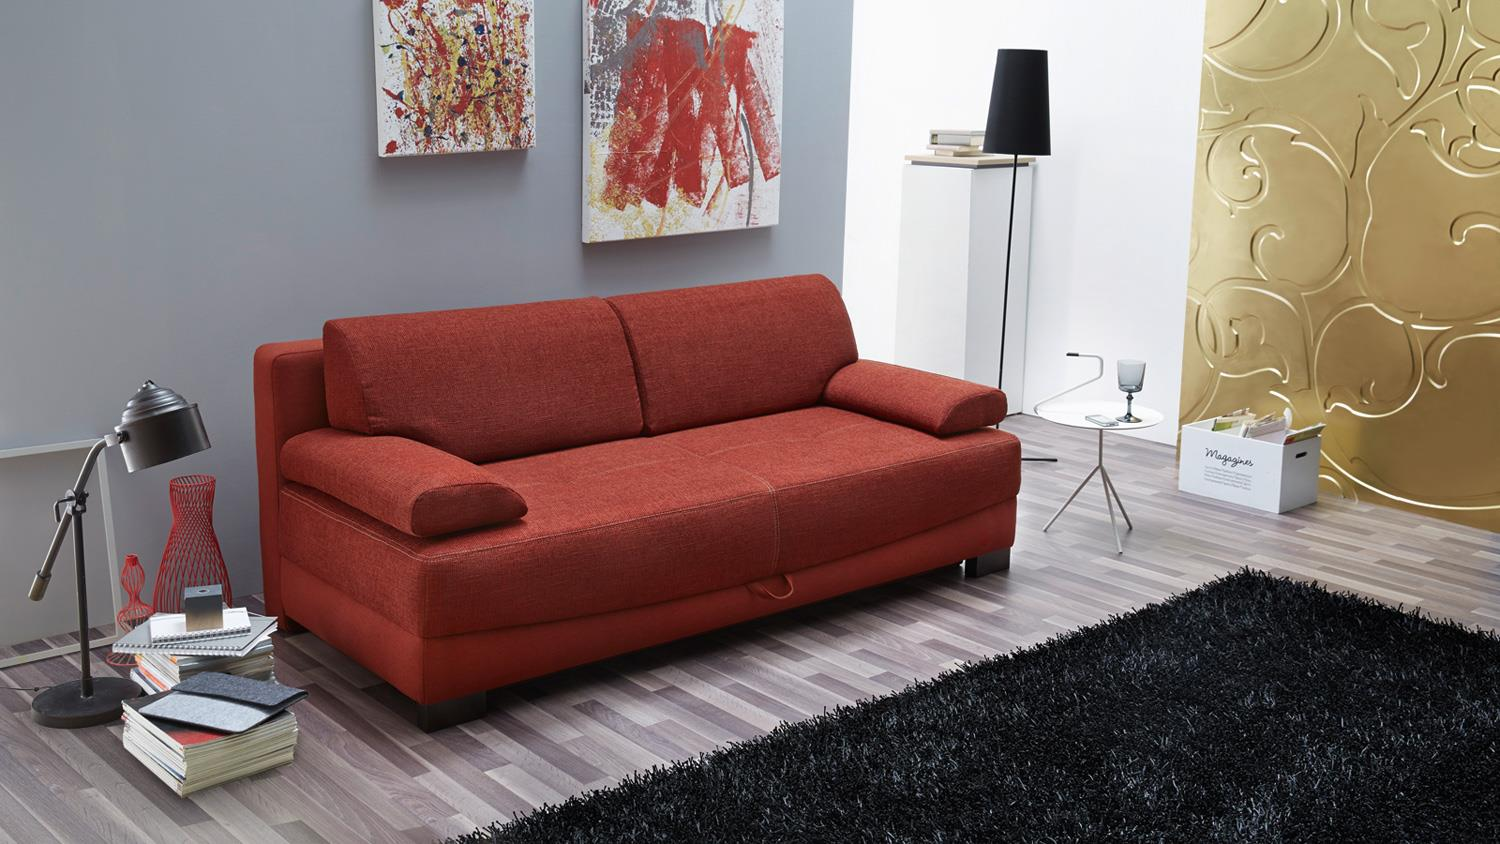 Funktionssofa angelosa schlafsofa sofa in rot 200 cm for Couch 200 cm